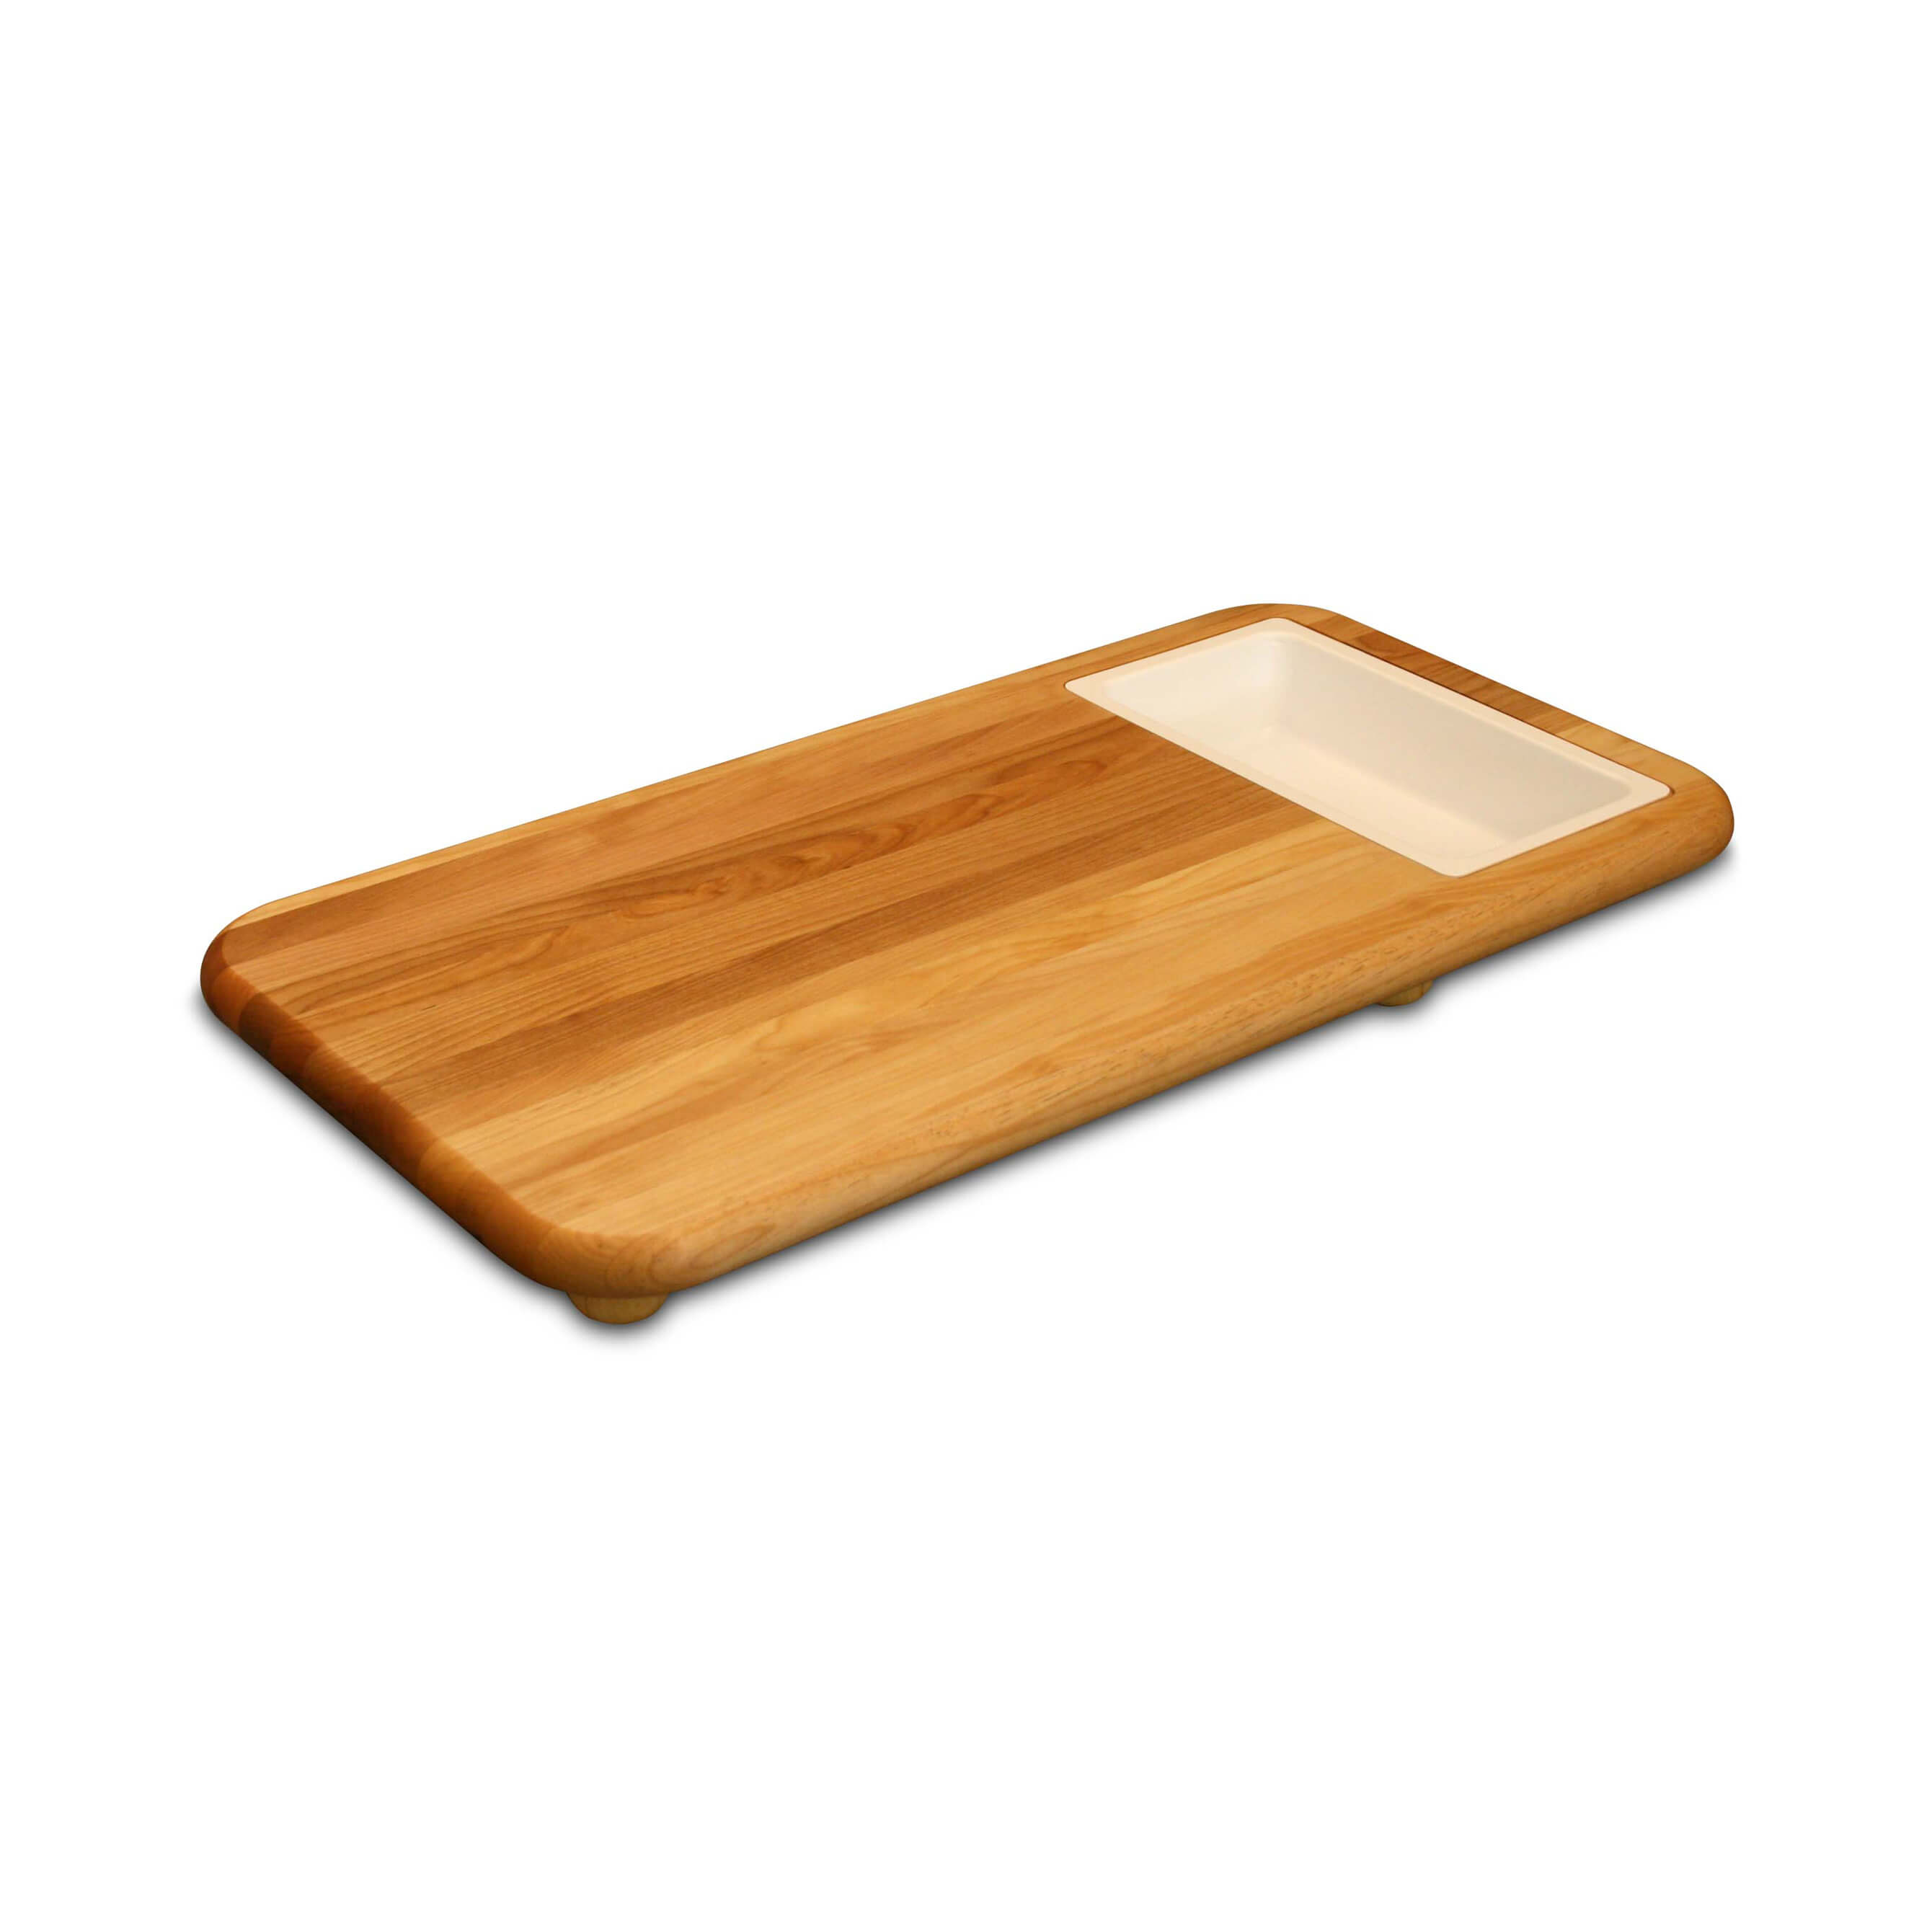 Cutting Boards. 🔍. Previous Image